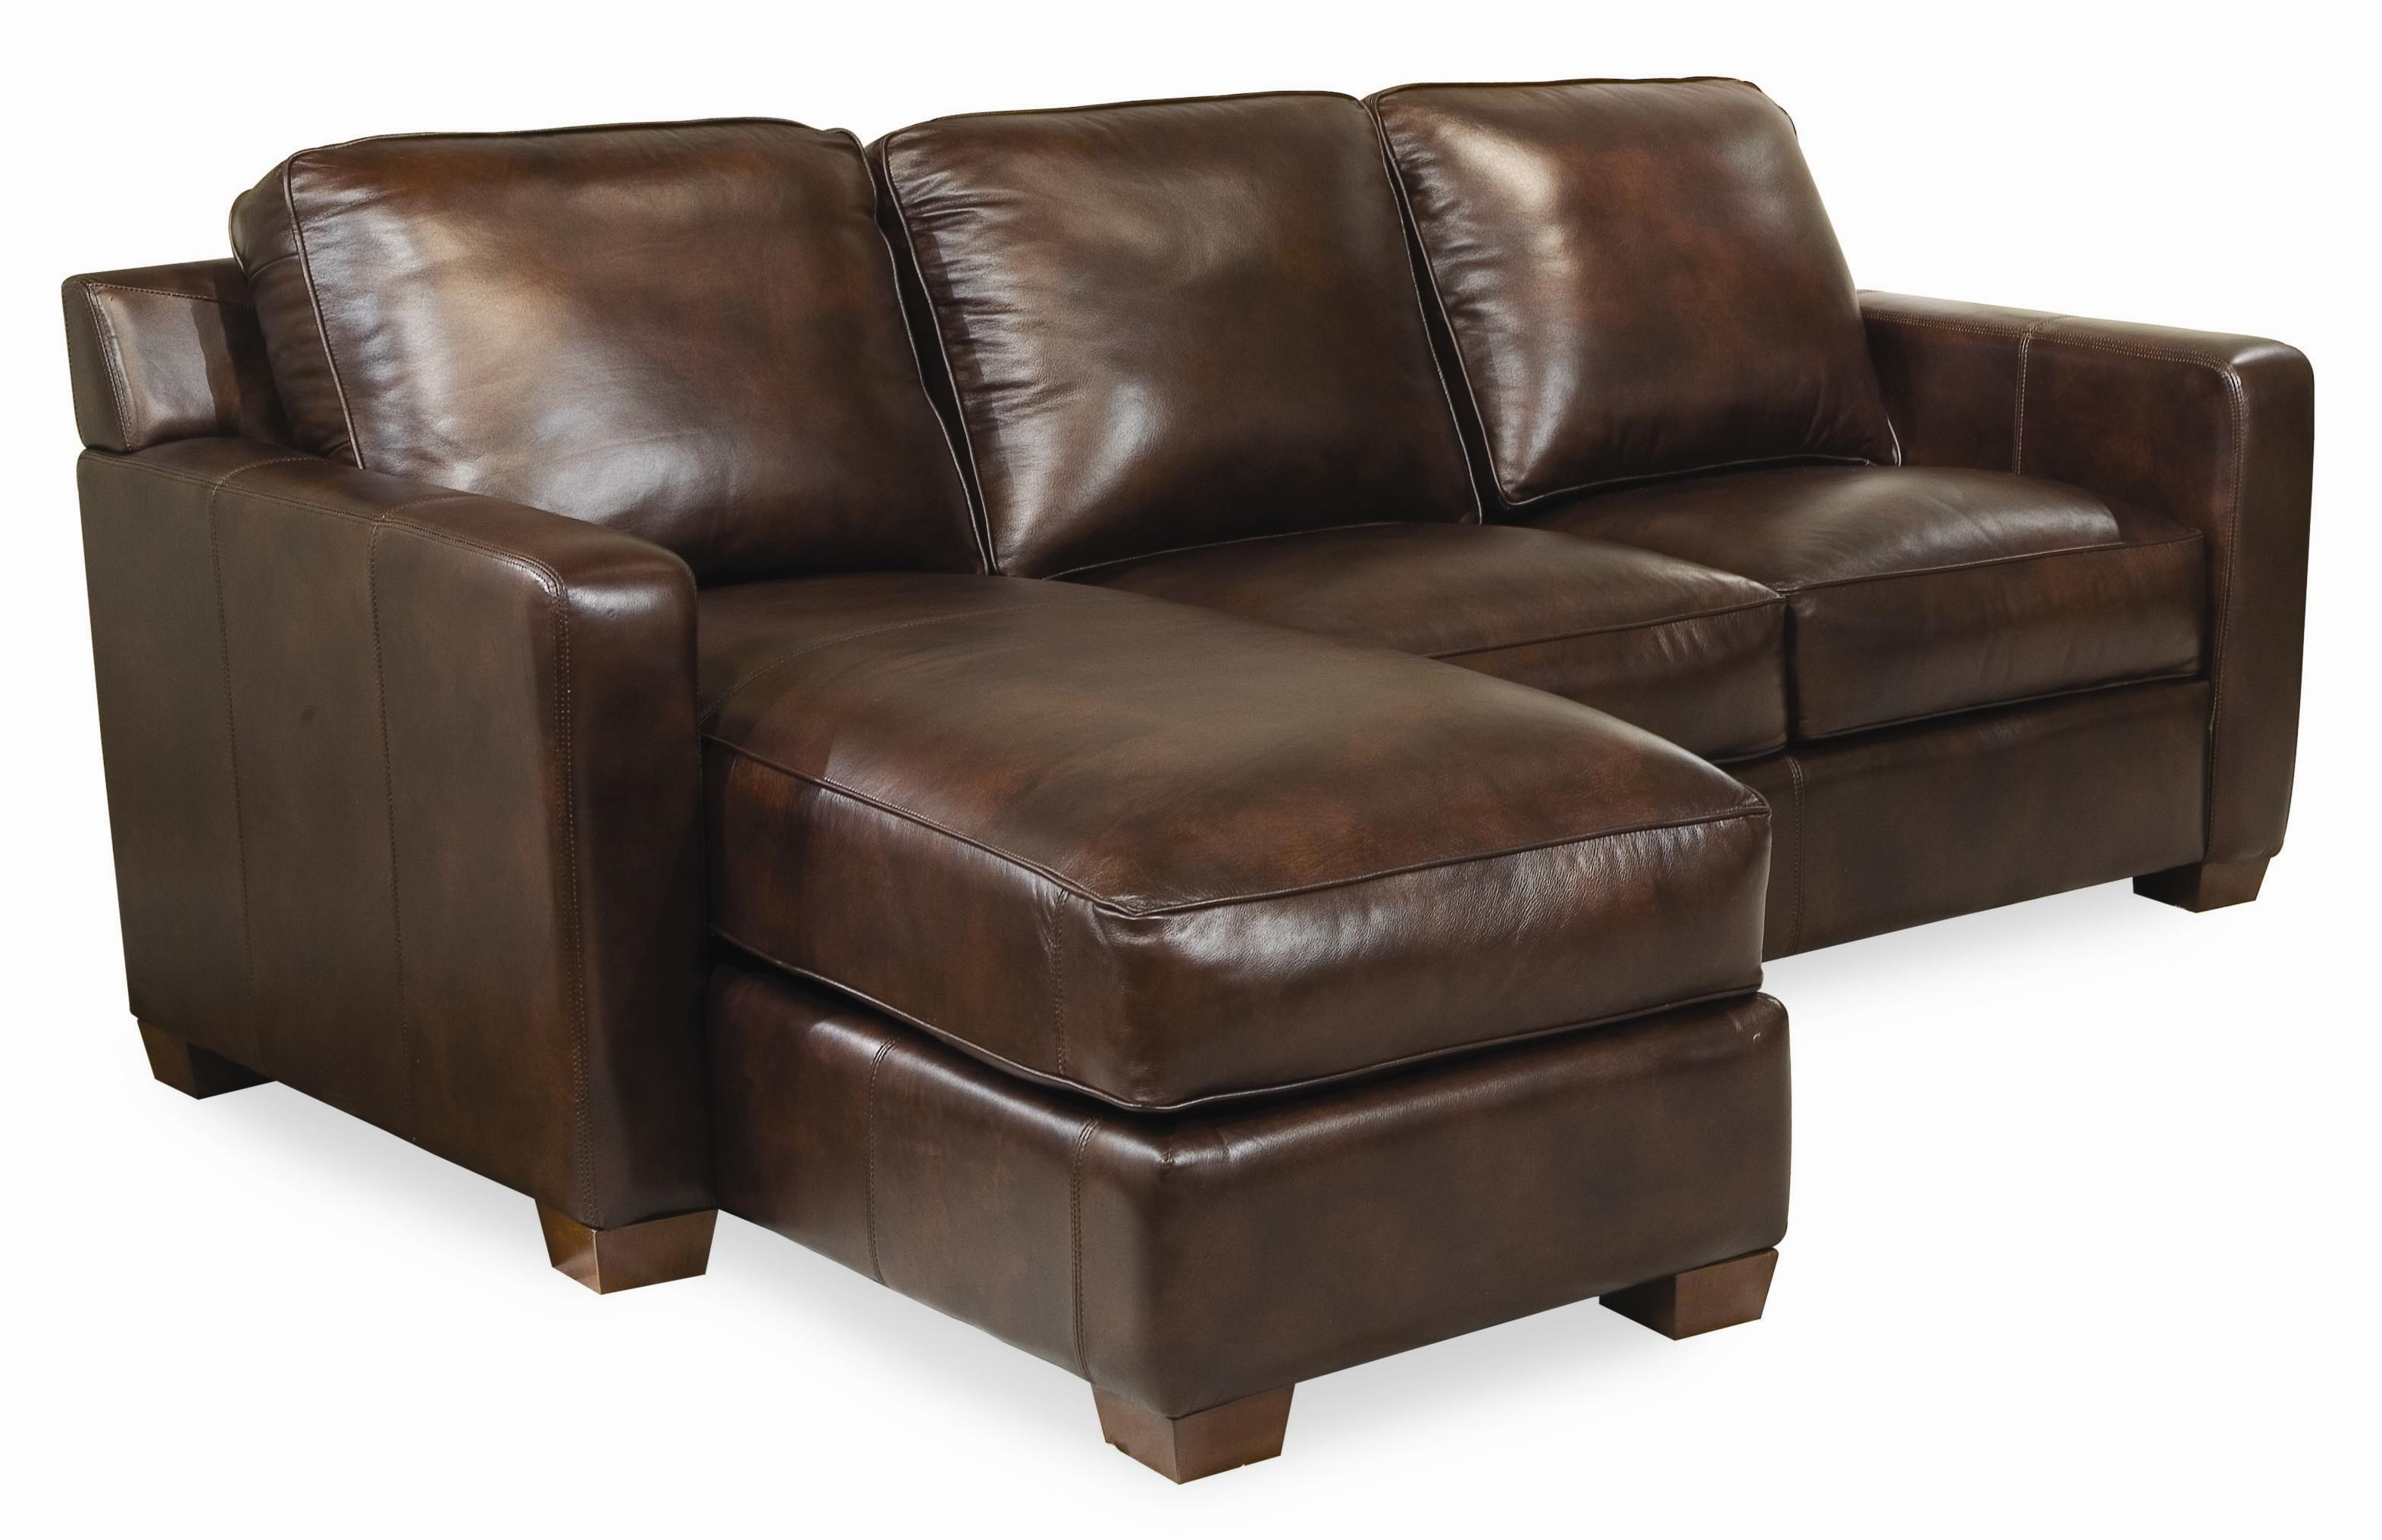 Merveilleux Thomasville® Leather Choices   MetroLeather Select Sectional ...